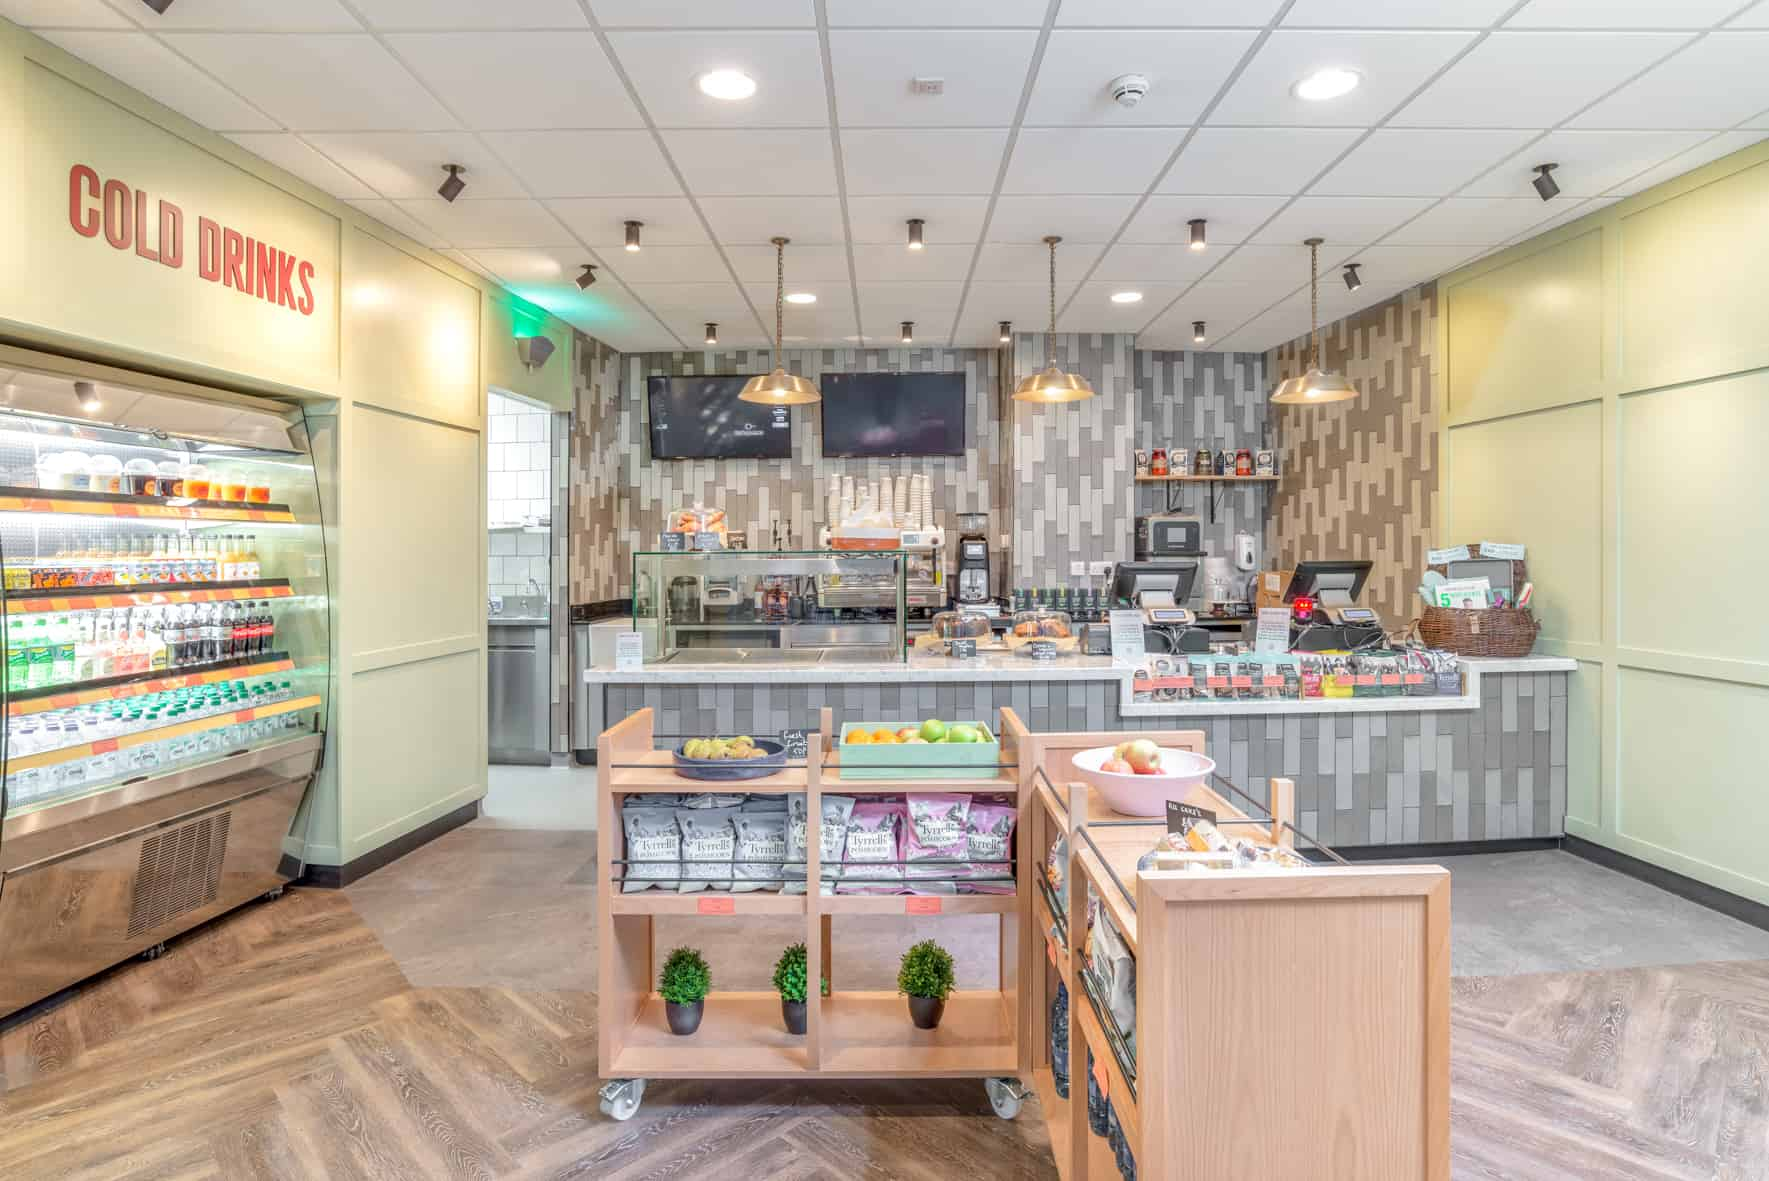 RDA help to create first Jamie Oliver's Deli in the education sector